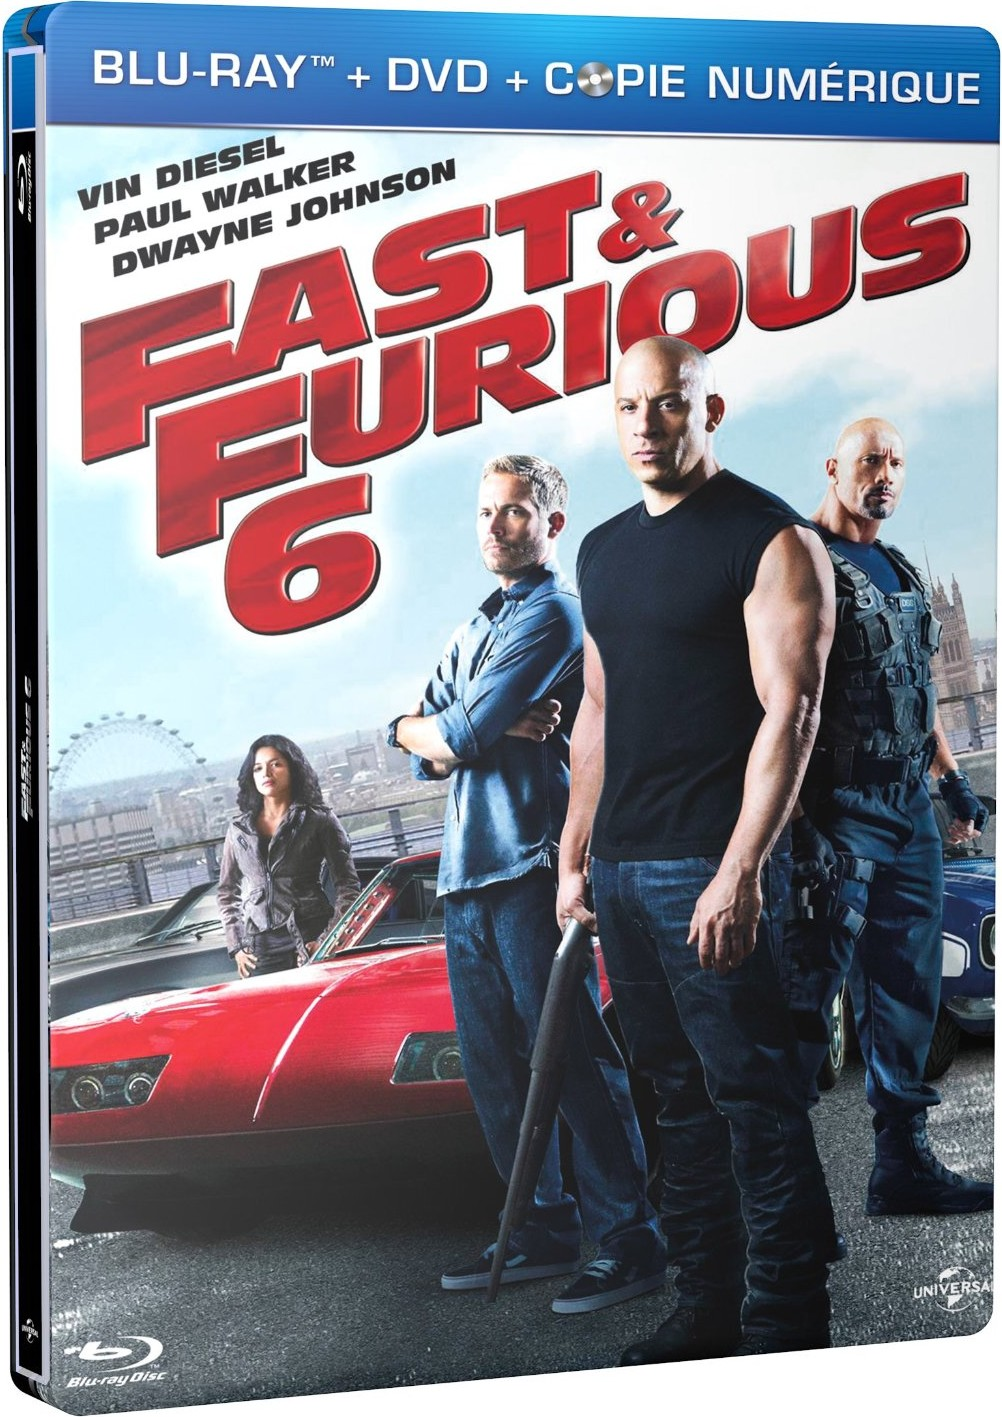 fast and furious 6 sortie blu ray et dvd le 24 septembre brain damaged. Black Bedroom Furniture Sets. Home Design Ideas